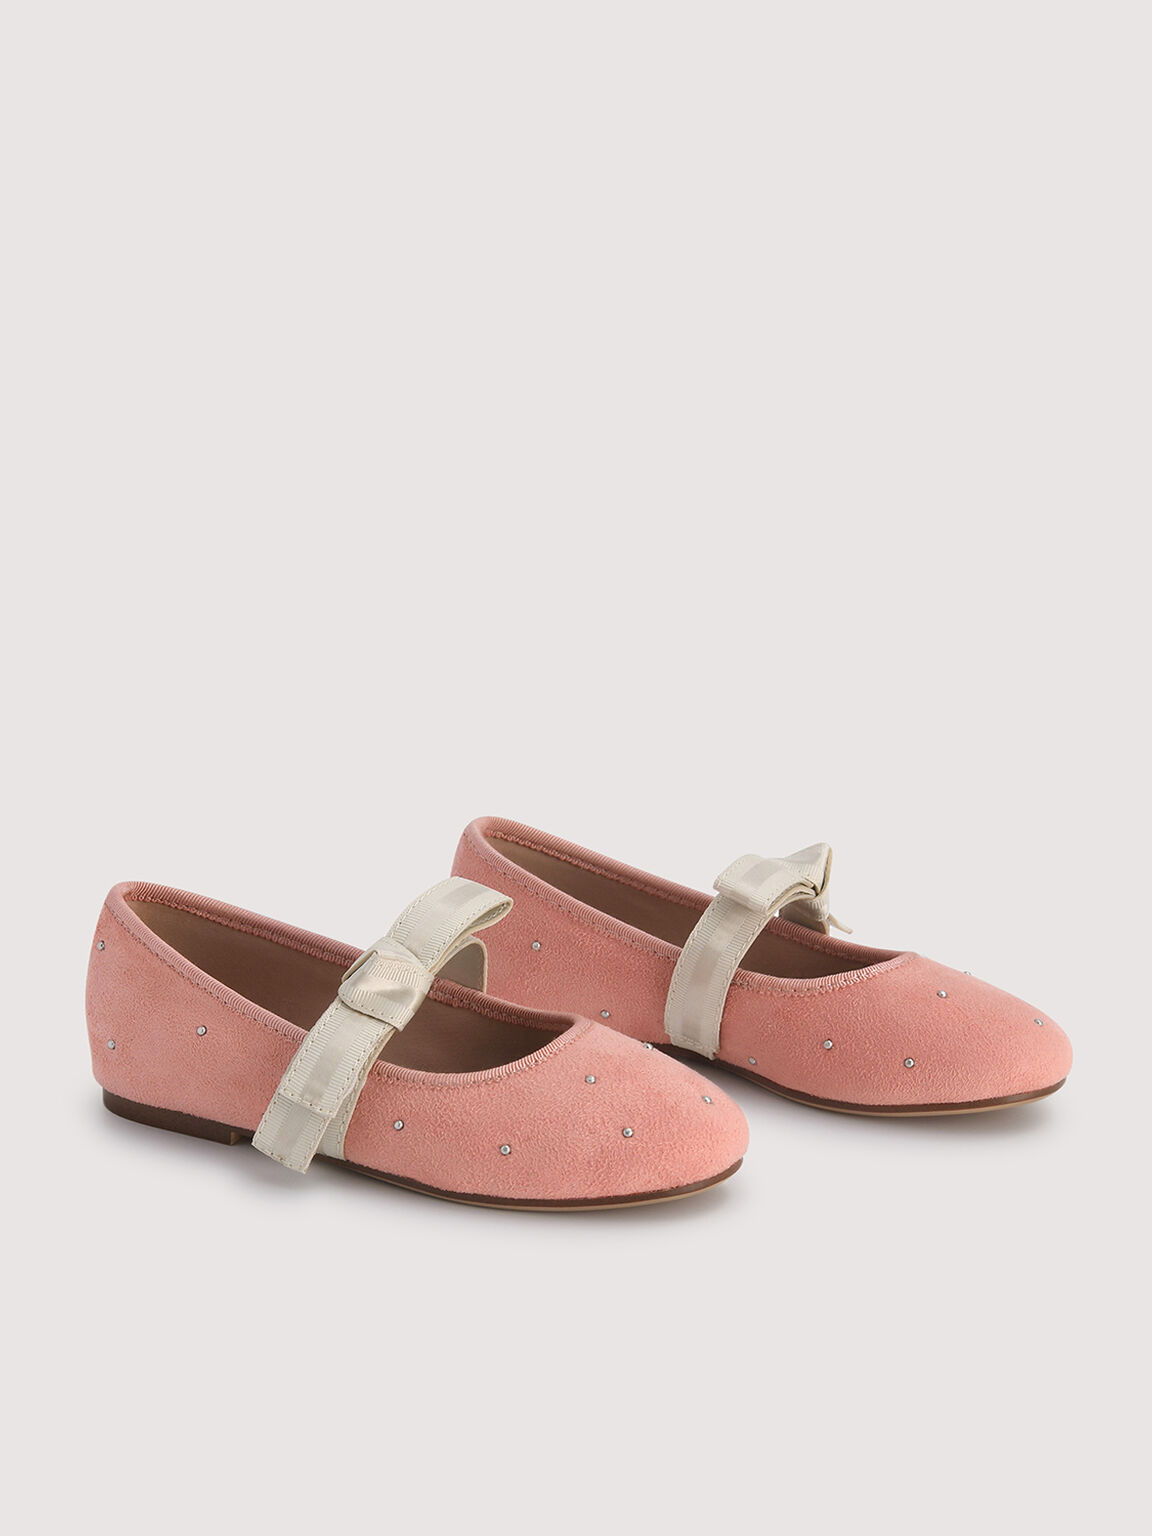 Ballerina Flats with Pearl Detailing, Coral, hi-res